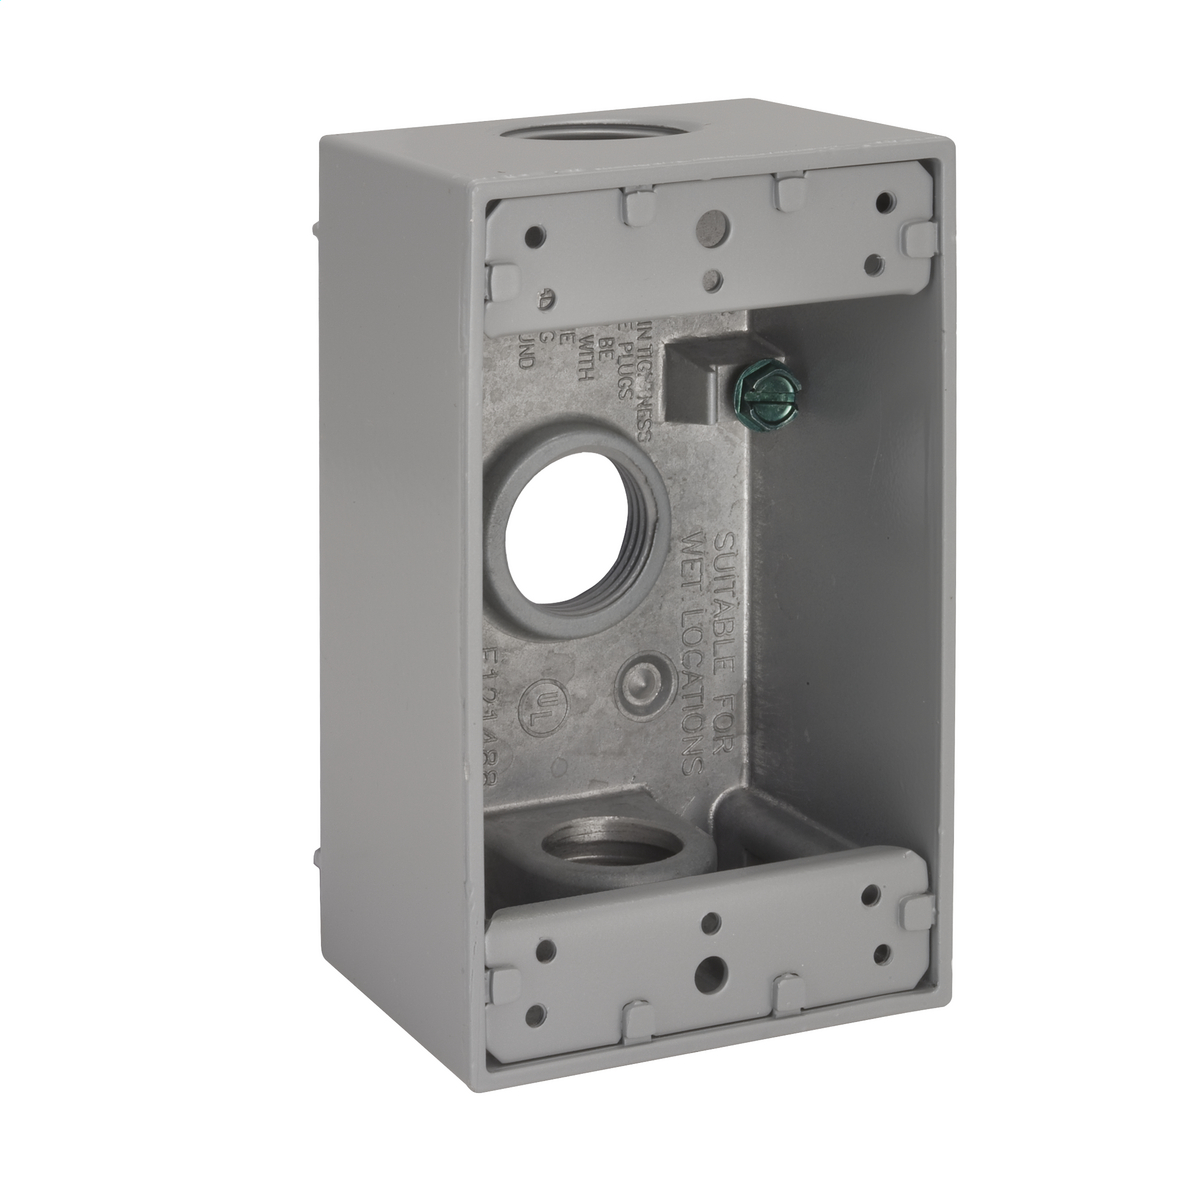 Hubbell-Raco 5324-0 BELL Weatherproof Outlet Box